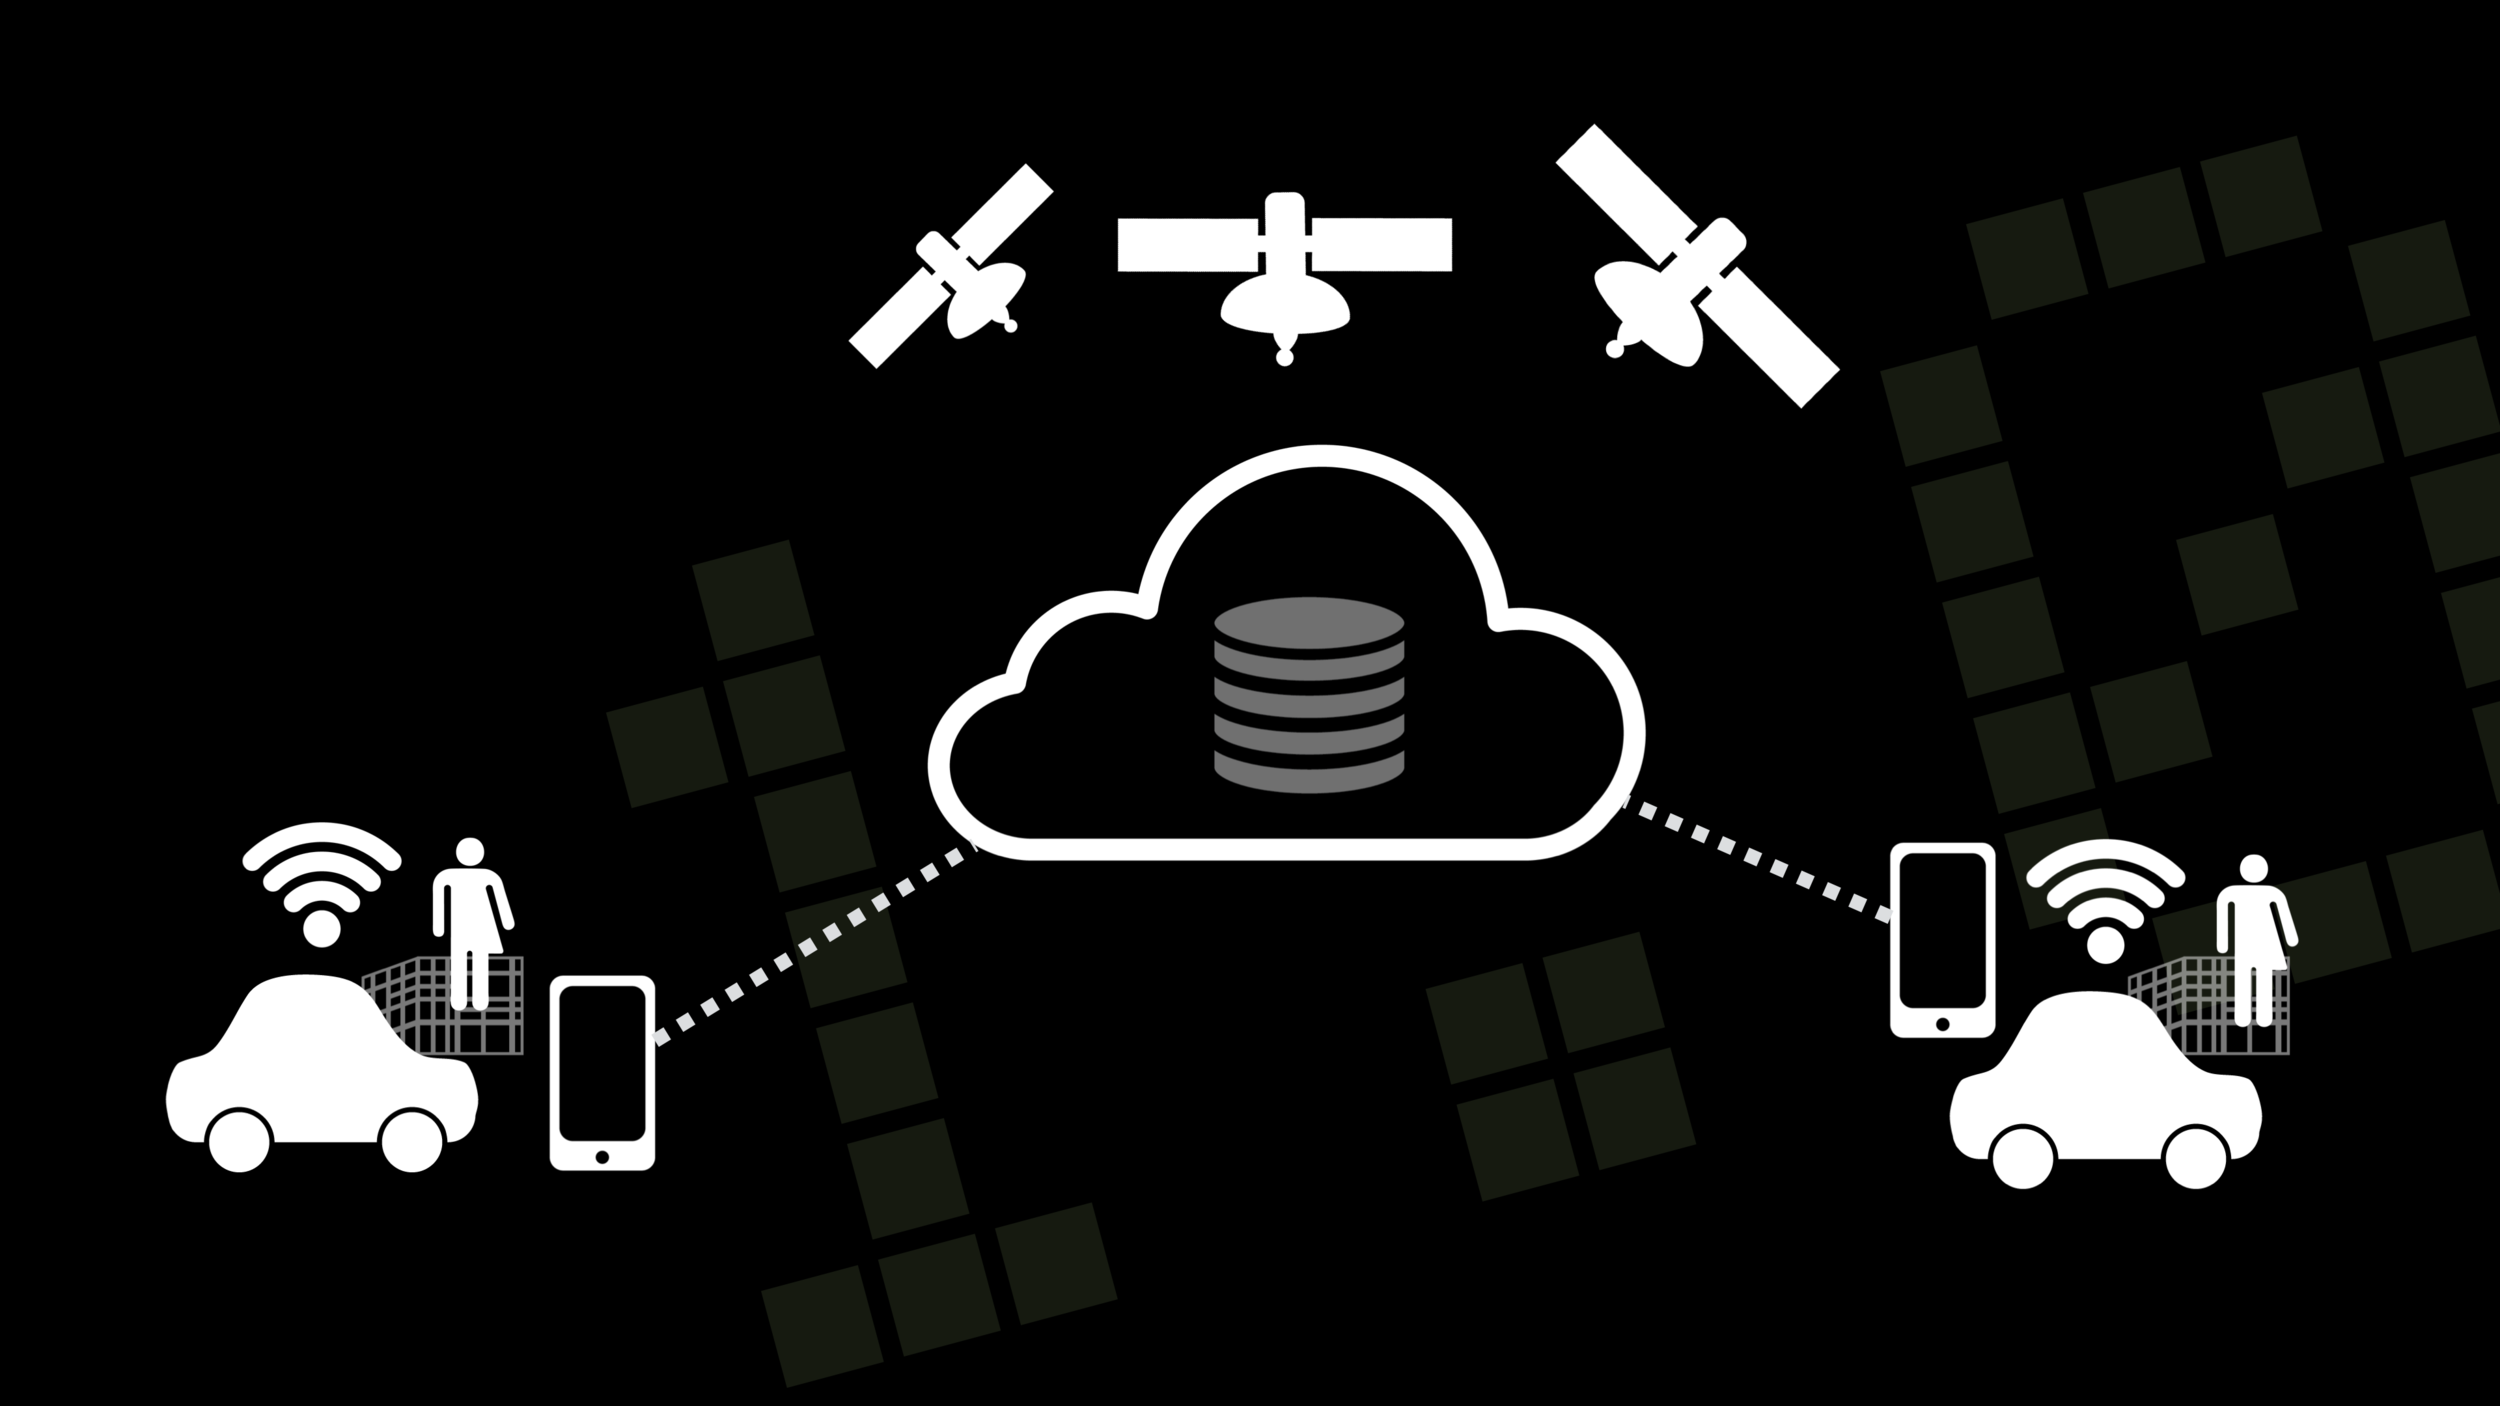 In this system, we have a limited set of tools—GPS satellite coordinates, local sensors and phones, basic network connections and a shared data store—combining various pieces of information to provide everyone on the network more accurate traffic and routing information. Web-enabled GPS in a vehicle provides huge improvements in ease of use, but it doesn't solve the problems which cause traffic in the first place.